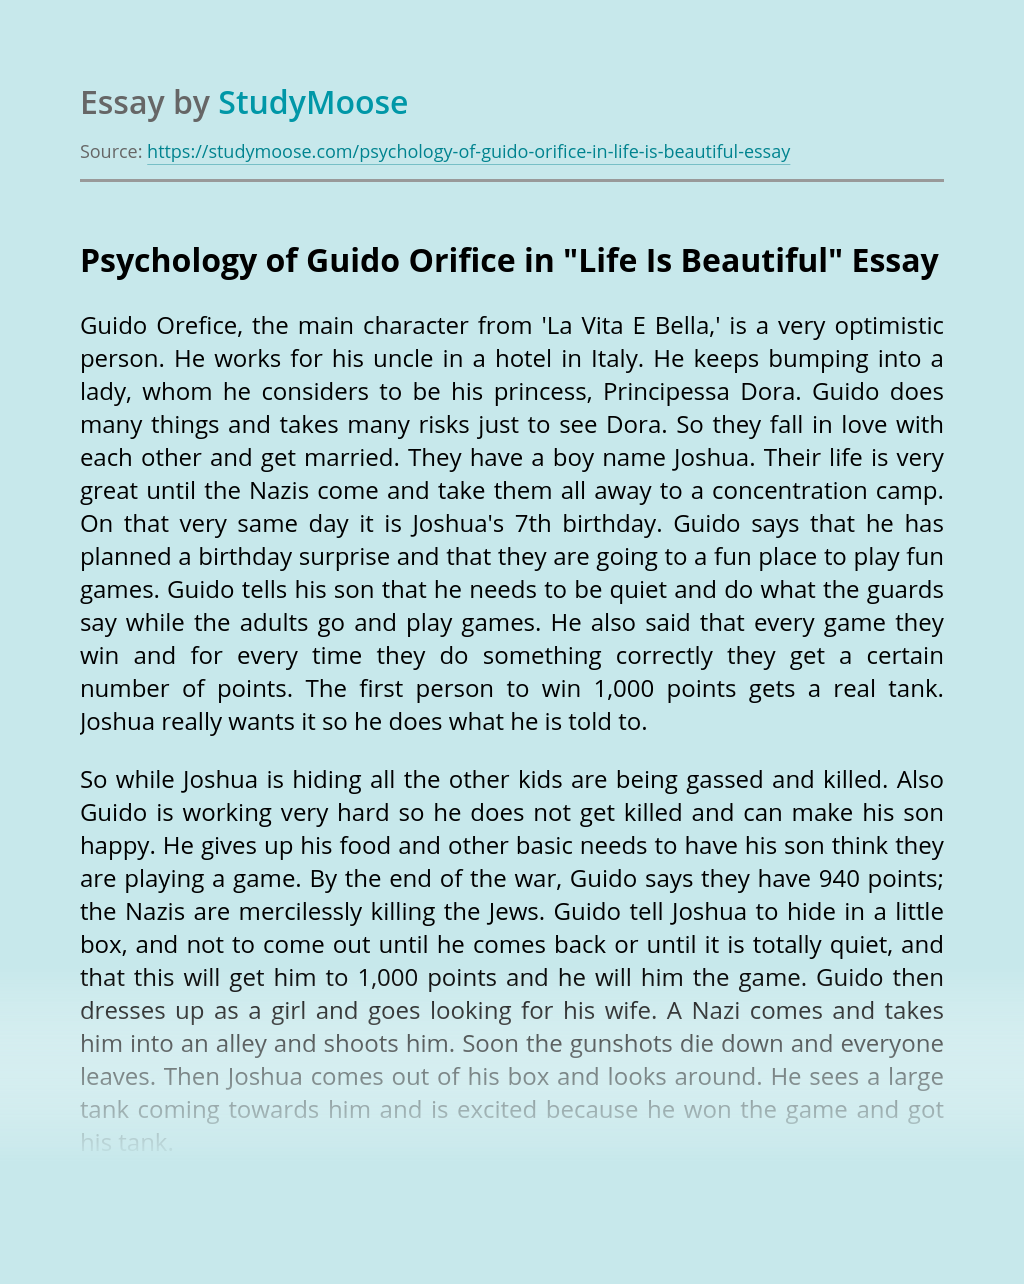 """Psychology of Guido Orifice in """"Life Is Beautiful"""""""